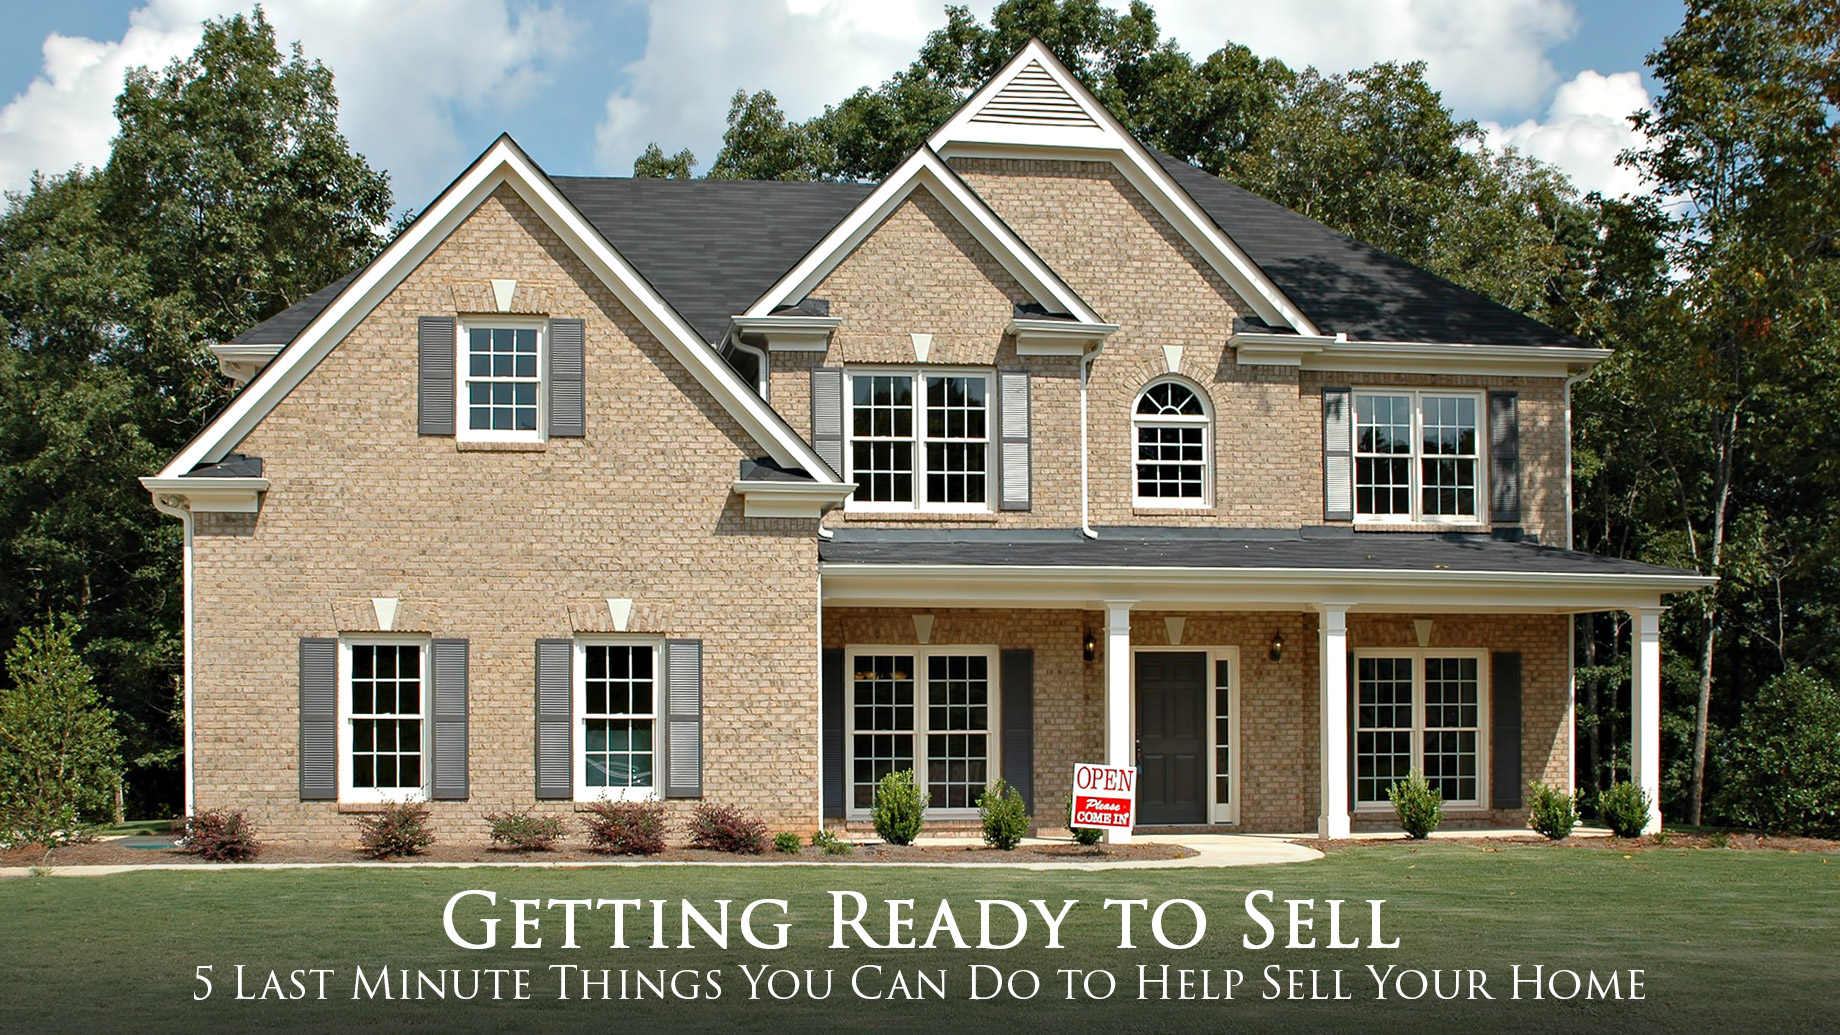 Getting Ready to Sell - 5 Last Minute Things You Can Do to Help Sell Your Home